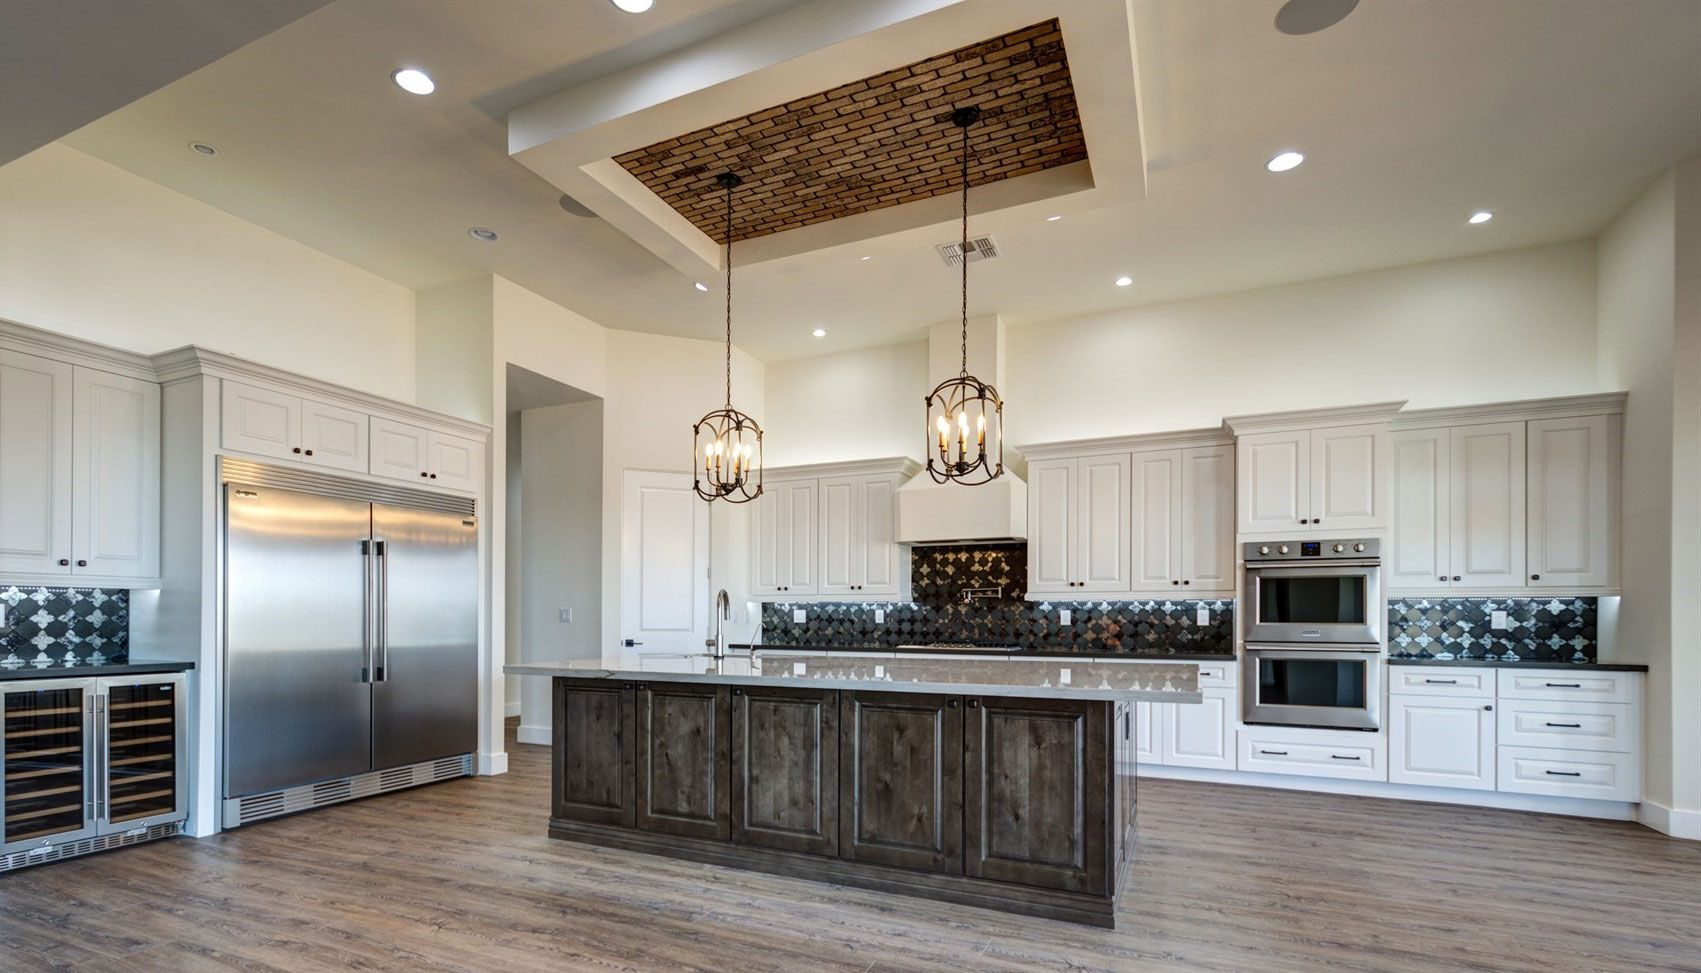 Combine Tahoe Ash And Tahoe White Cabinets From Value Series To Create This Beautiful Look In Your Kitche Gourmet Kitchen Design Kitchen Design Custom Kitchens